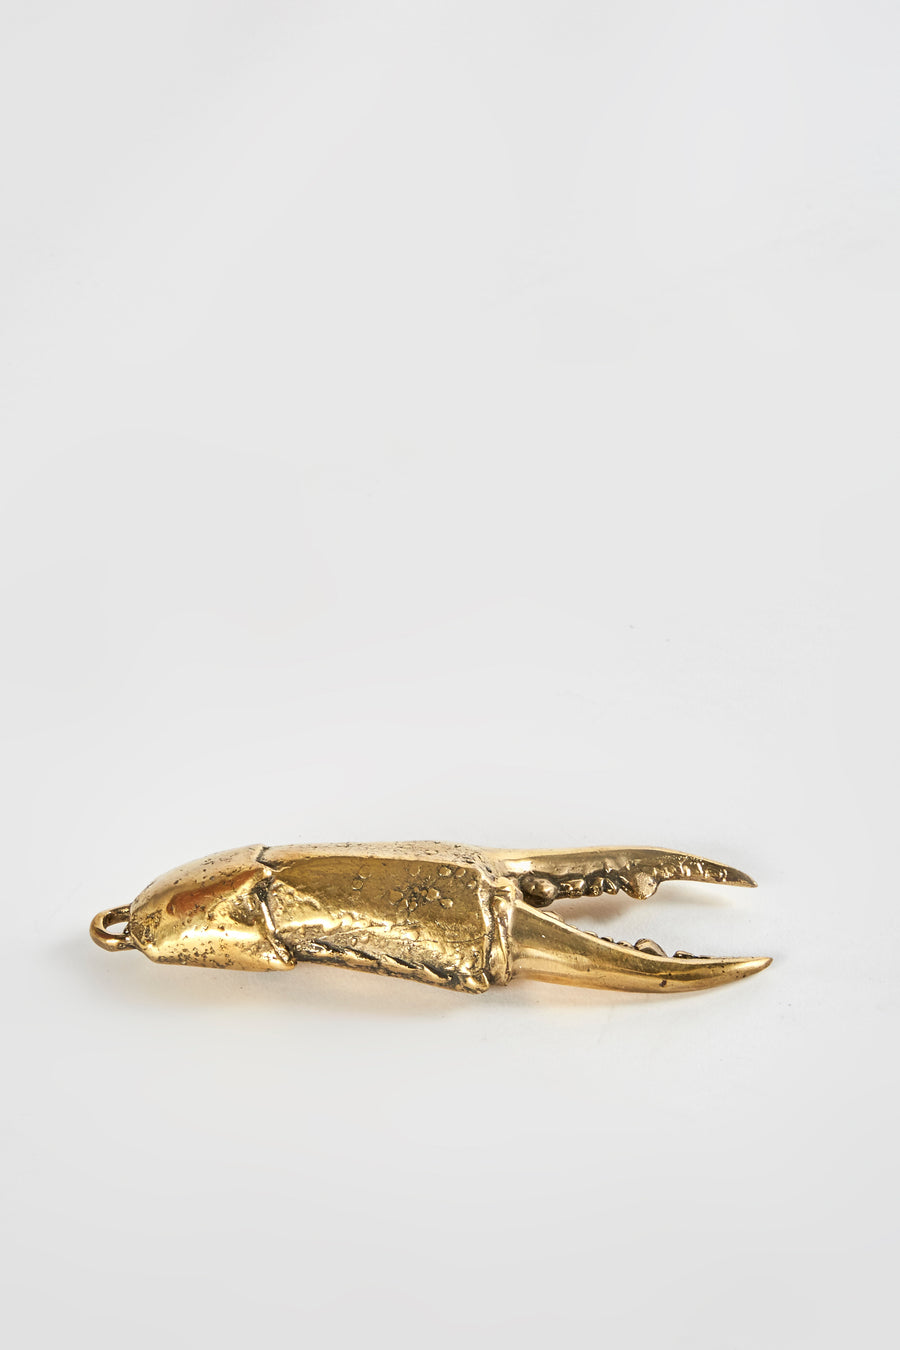 Crab Claw Bottle Opener